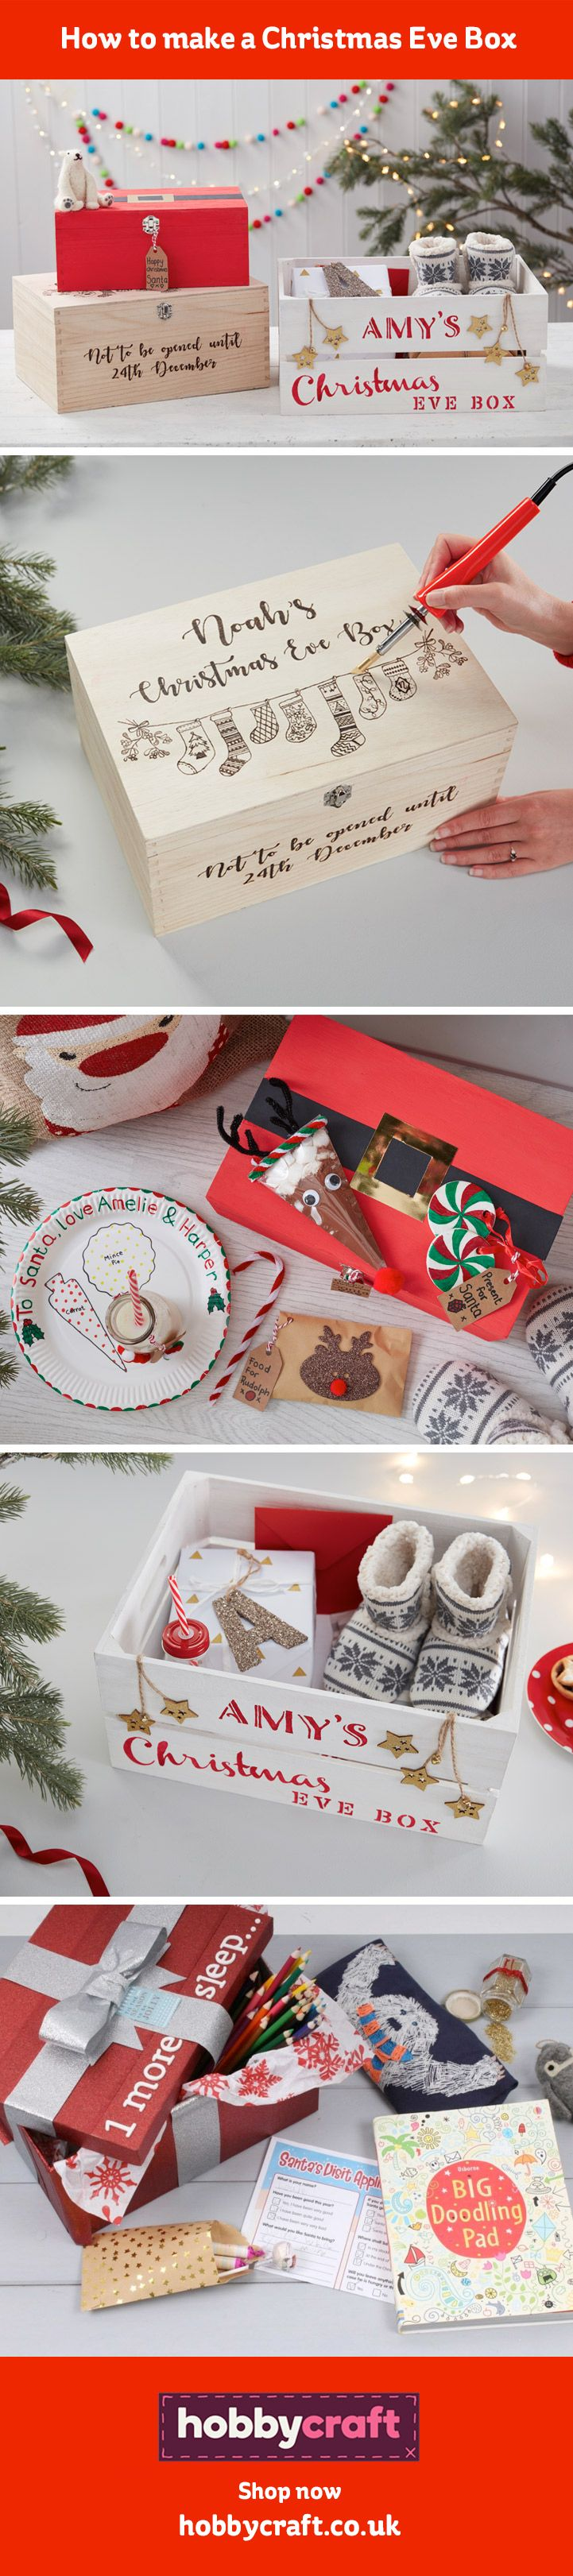 A Christmas Eve Box has become one of our favourite new holiday traditions. Make the night before Christmas extra special by packing a personalised Christmas Eve box full of little treats for the whole family to open together and enjoy.